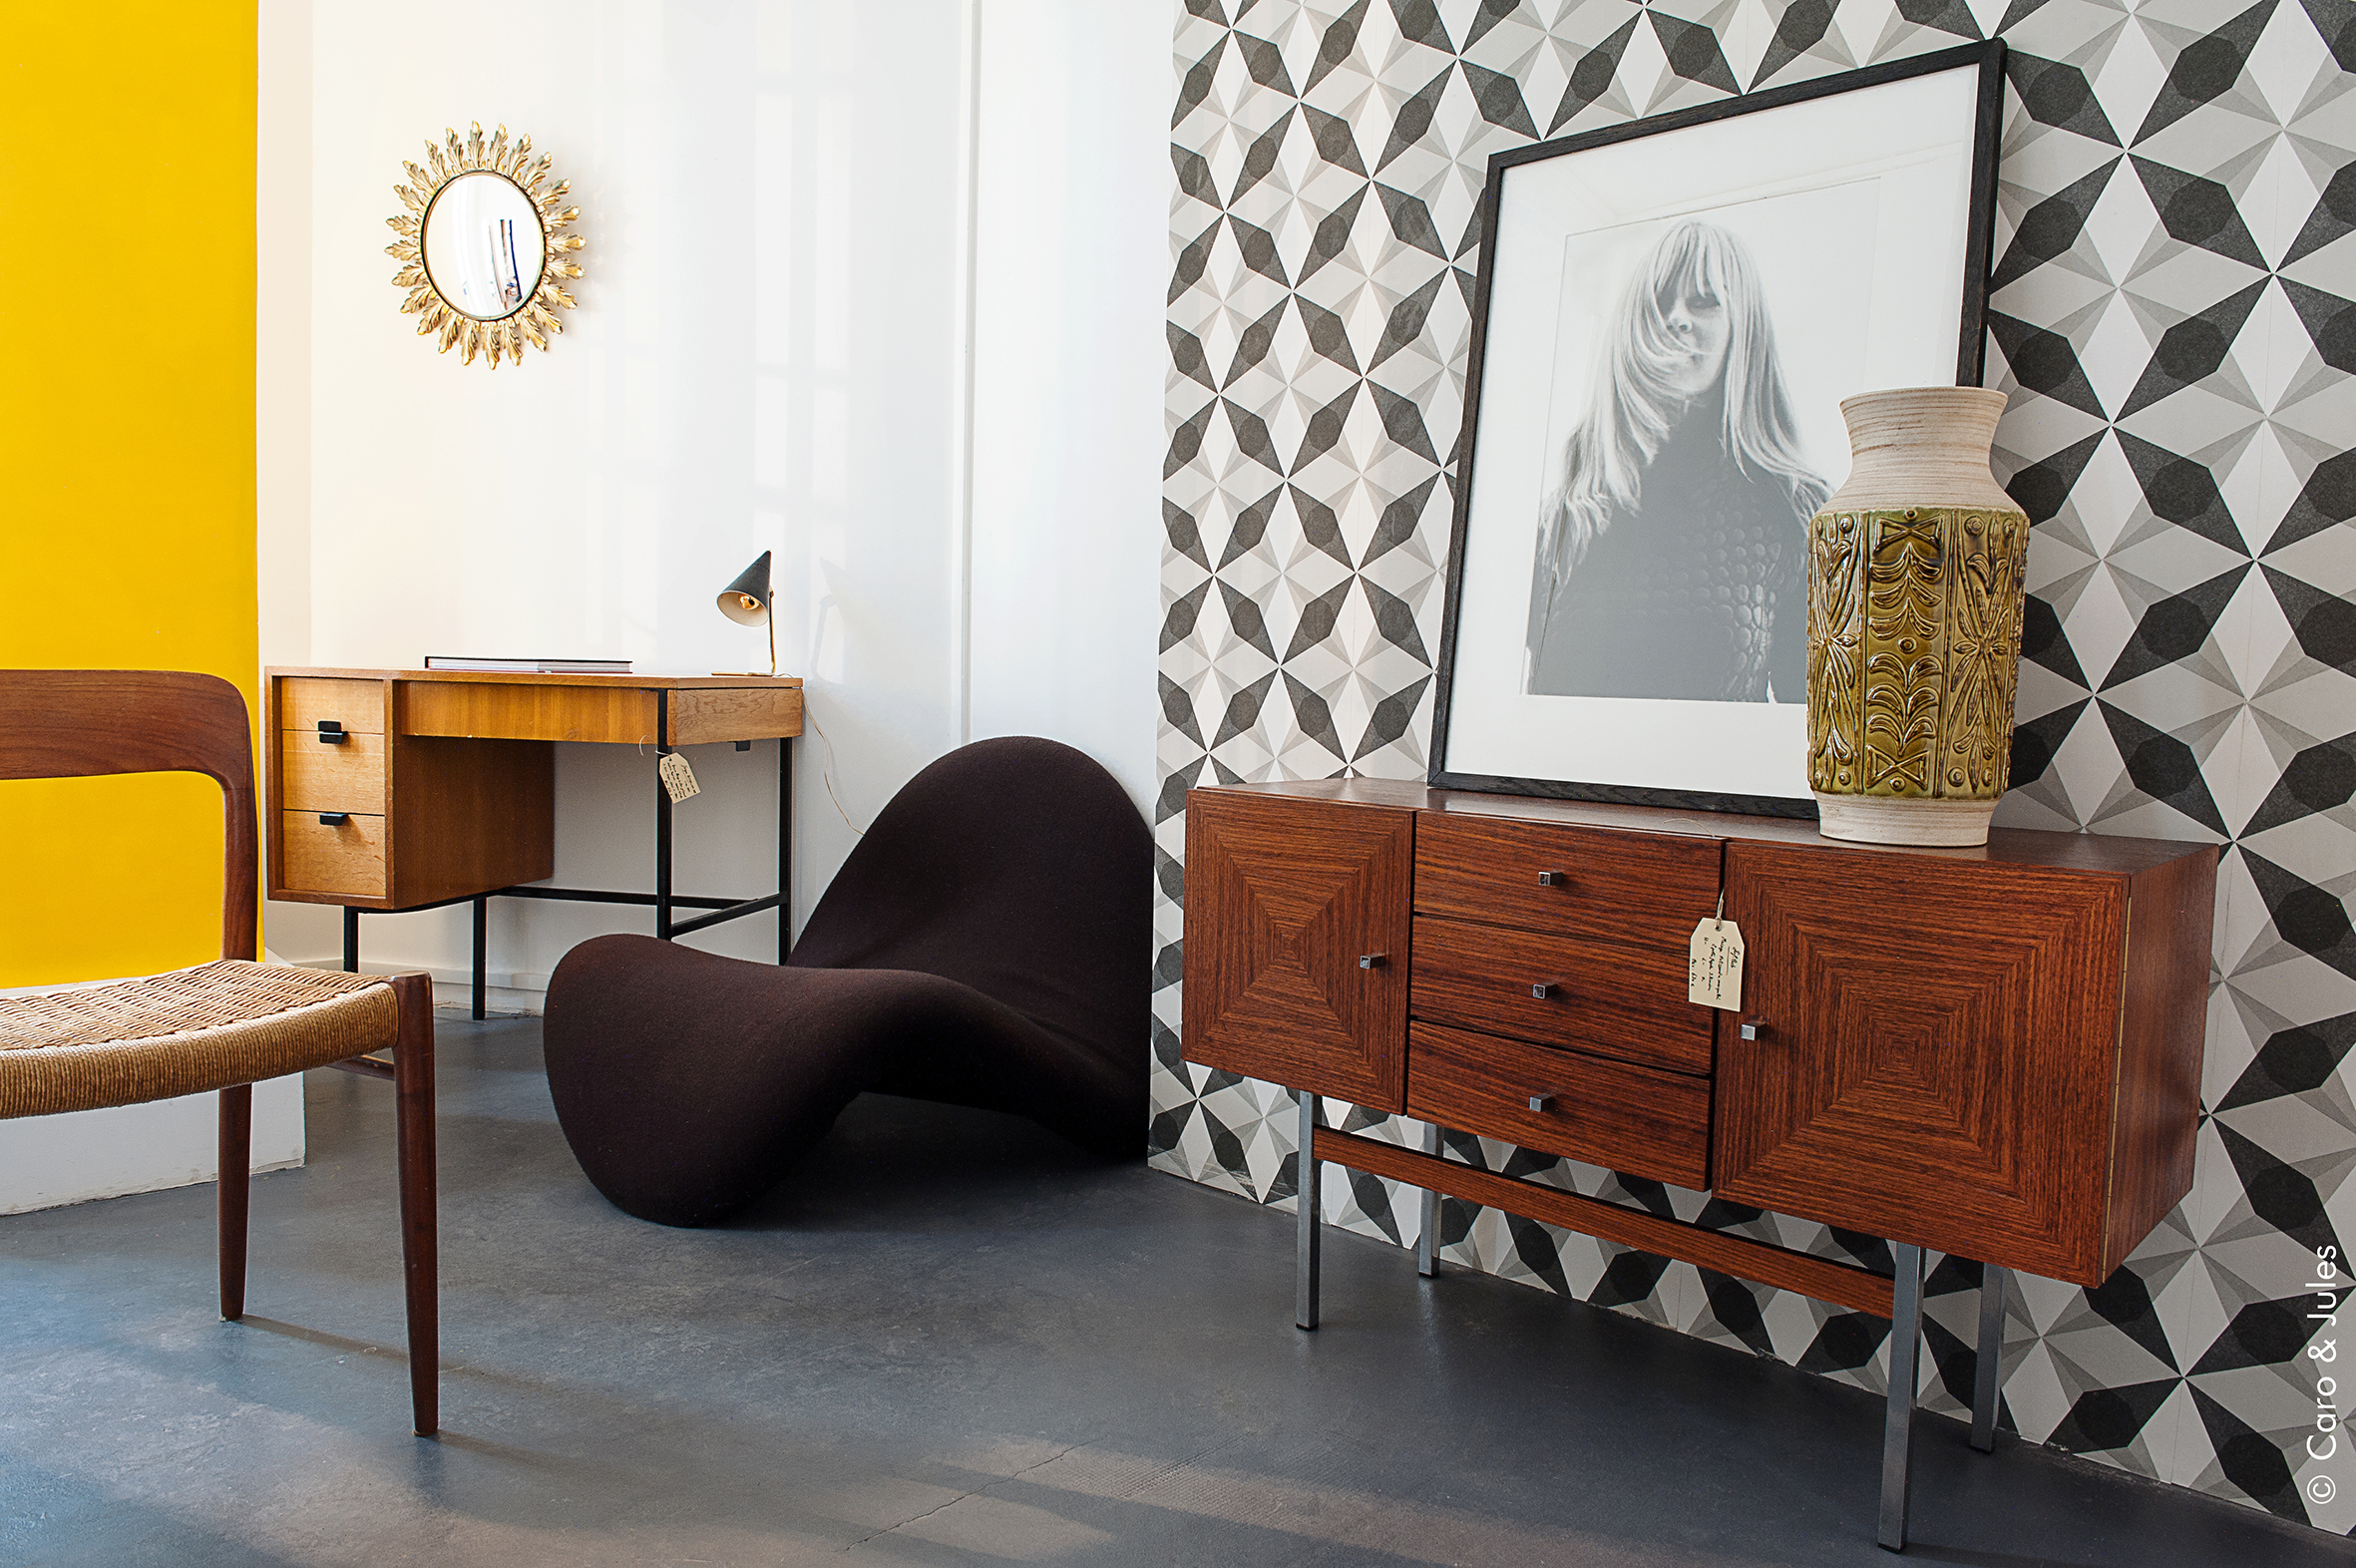 Cabinet 2d un show room de meuble vintage au coeur de paris - Boutique meuble vintage paris ...